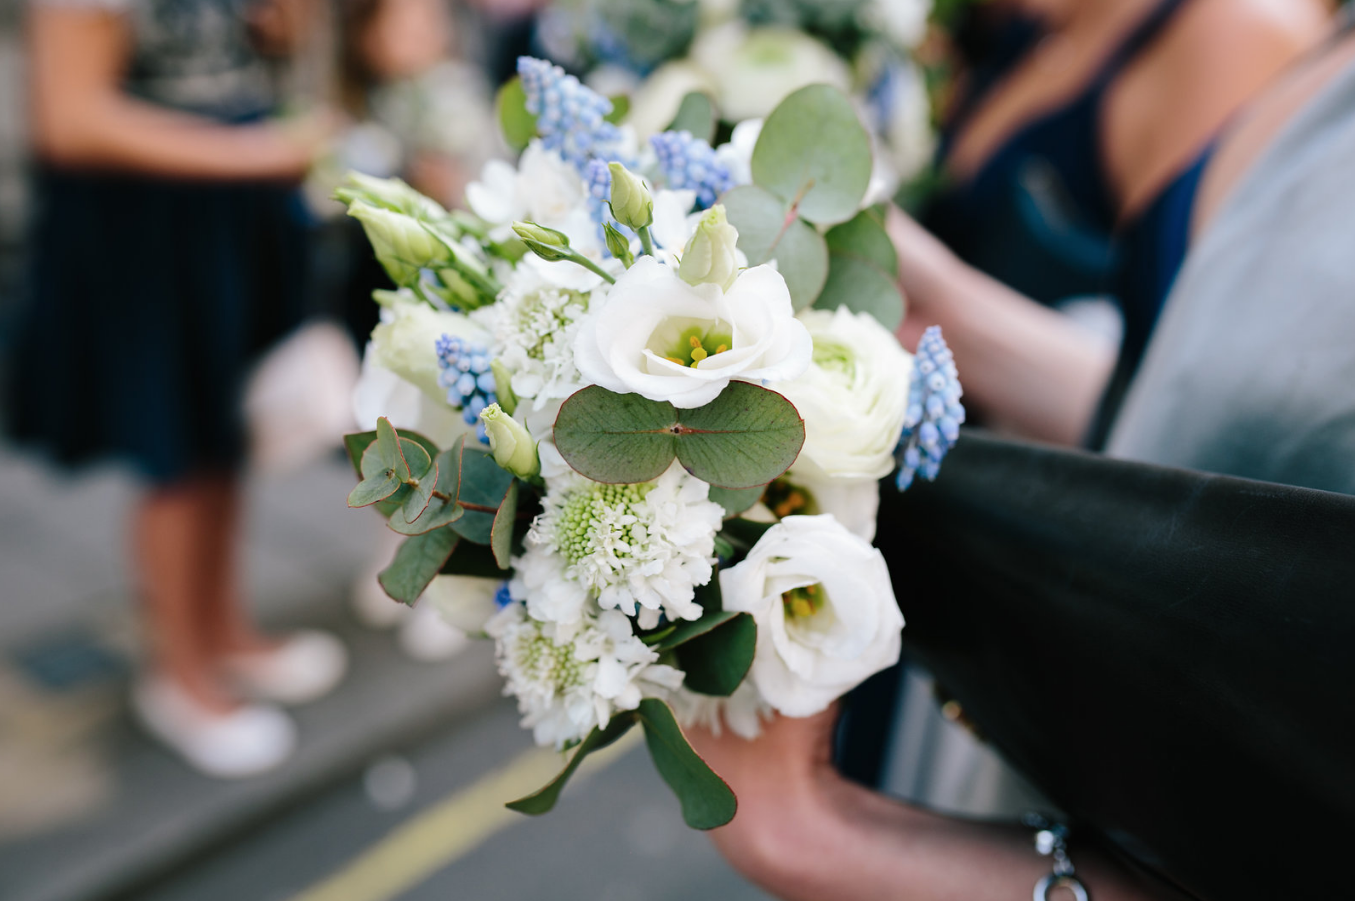 kent florist Jennifer Pinder London wedding in Dartmouth house spring flowers in blue and white 6.png